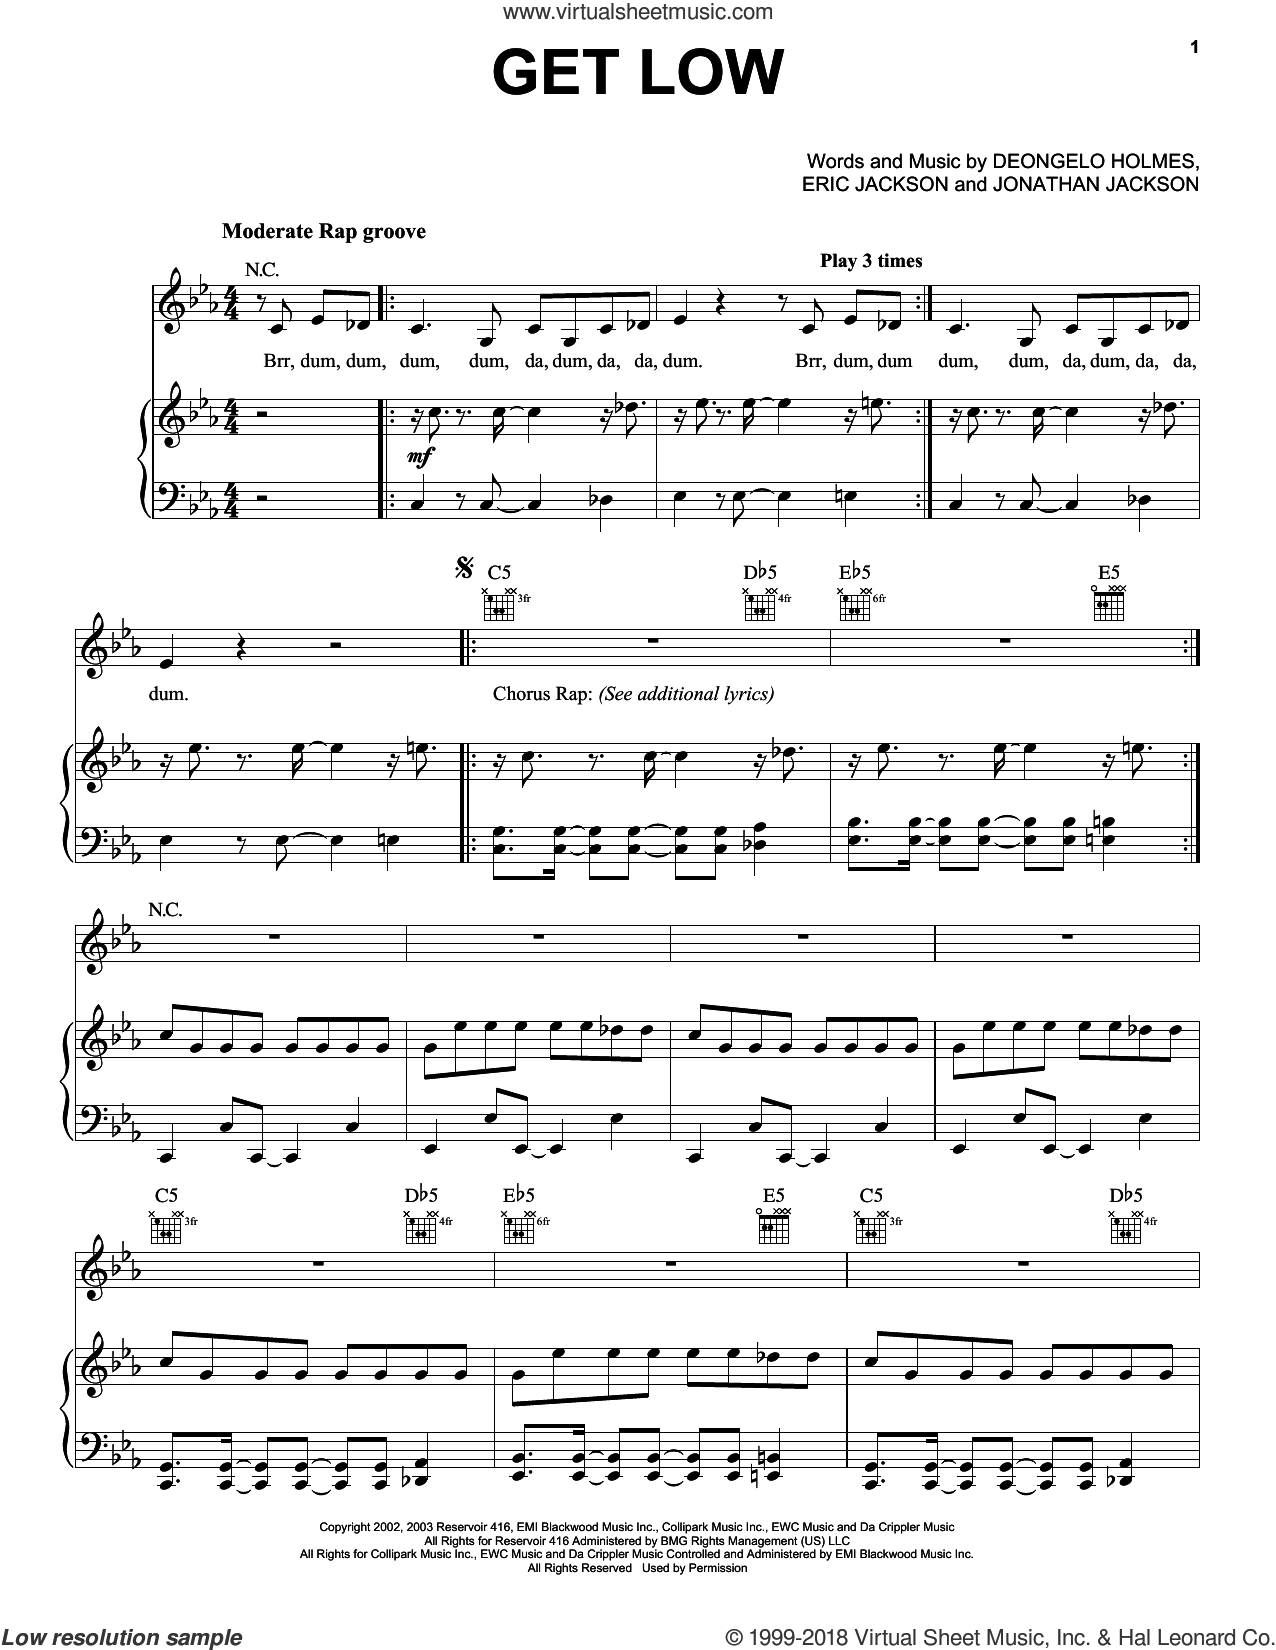 Get Low sheet music for voice, piano or guitar by Jonathan Jackson. Score Image Preview.